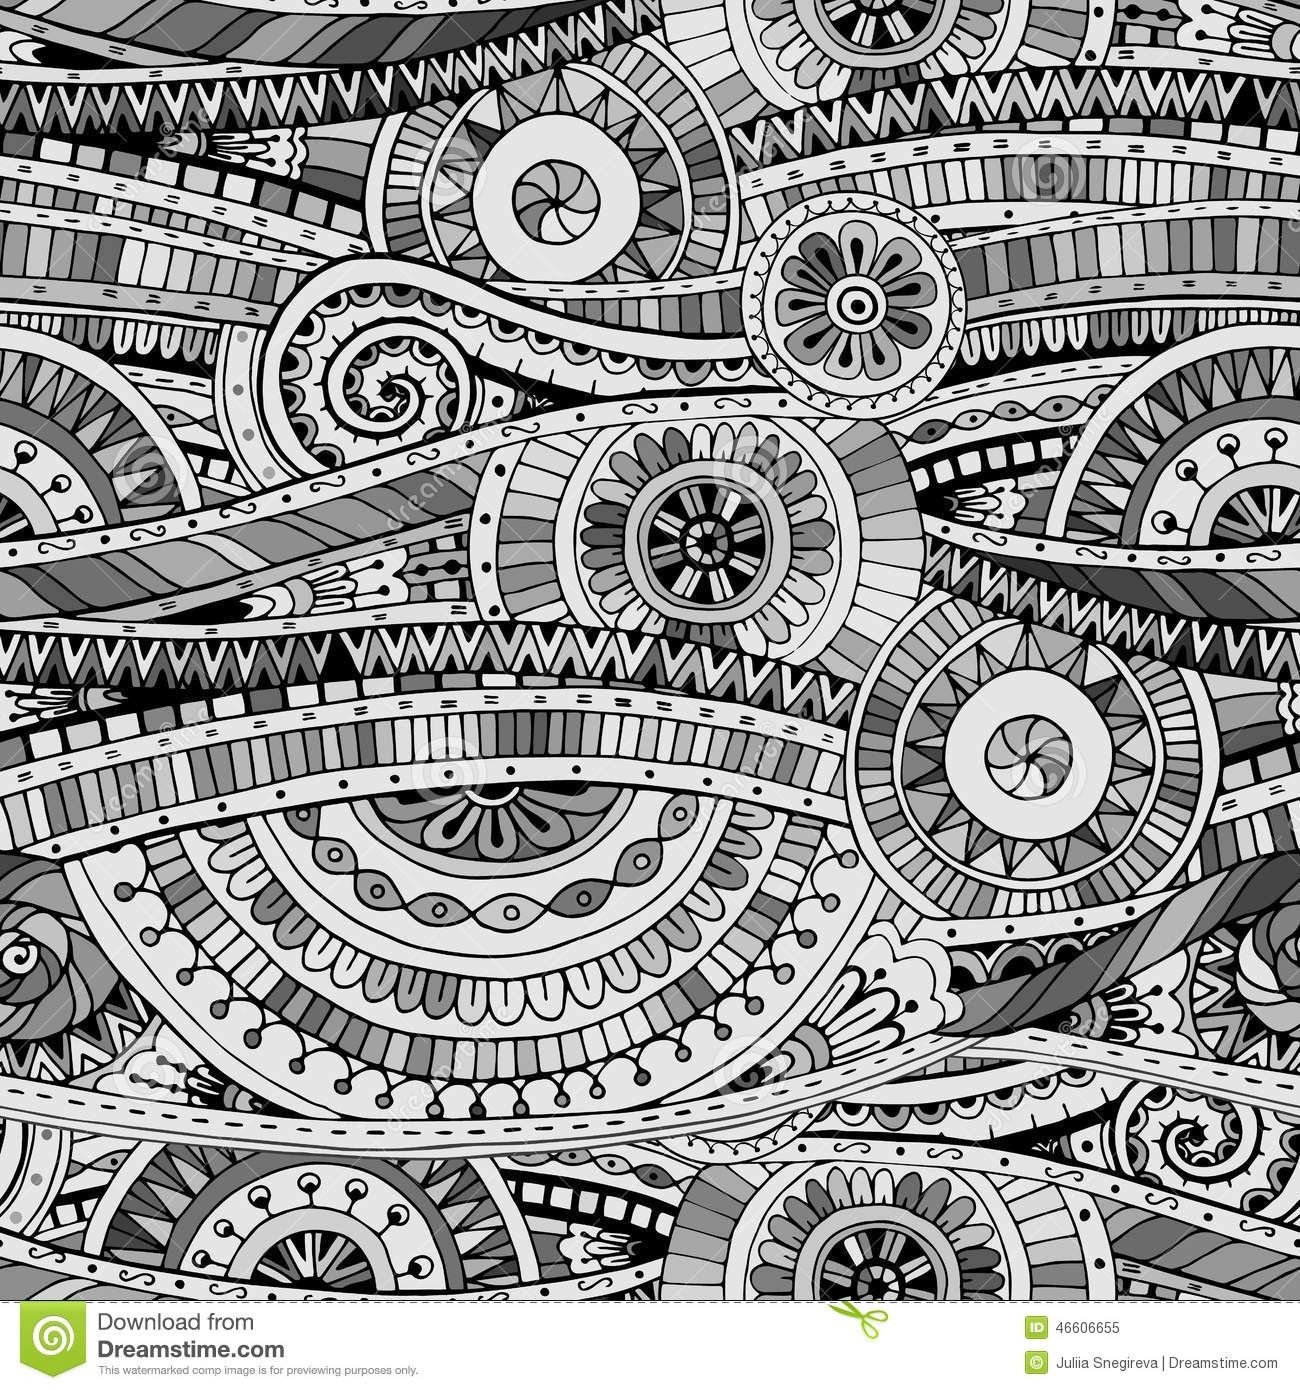 Tribal Patterns Black And White Drawing Q Pattern Mosaic Drawing Abstract Coloring Pages Black And White Drawing